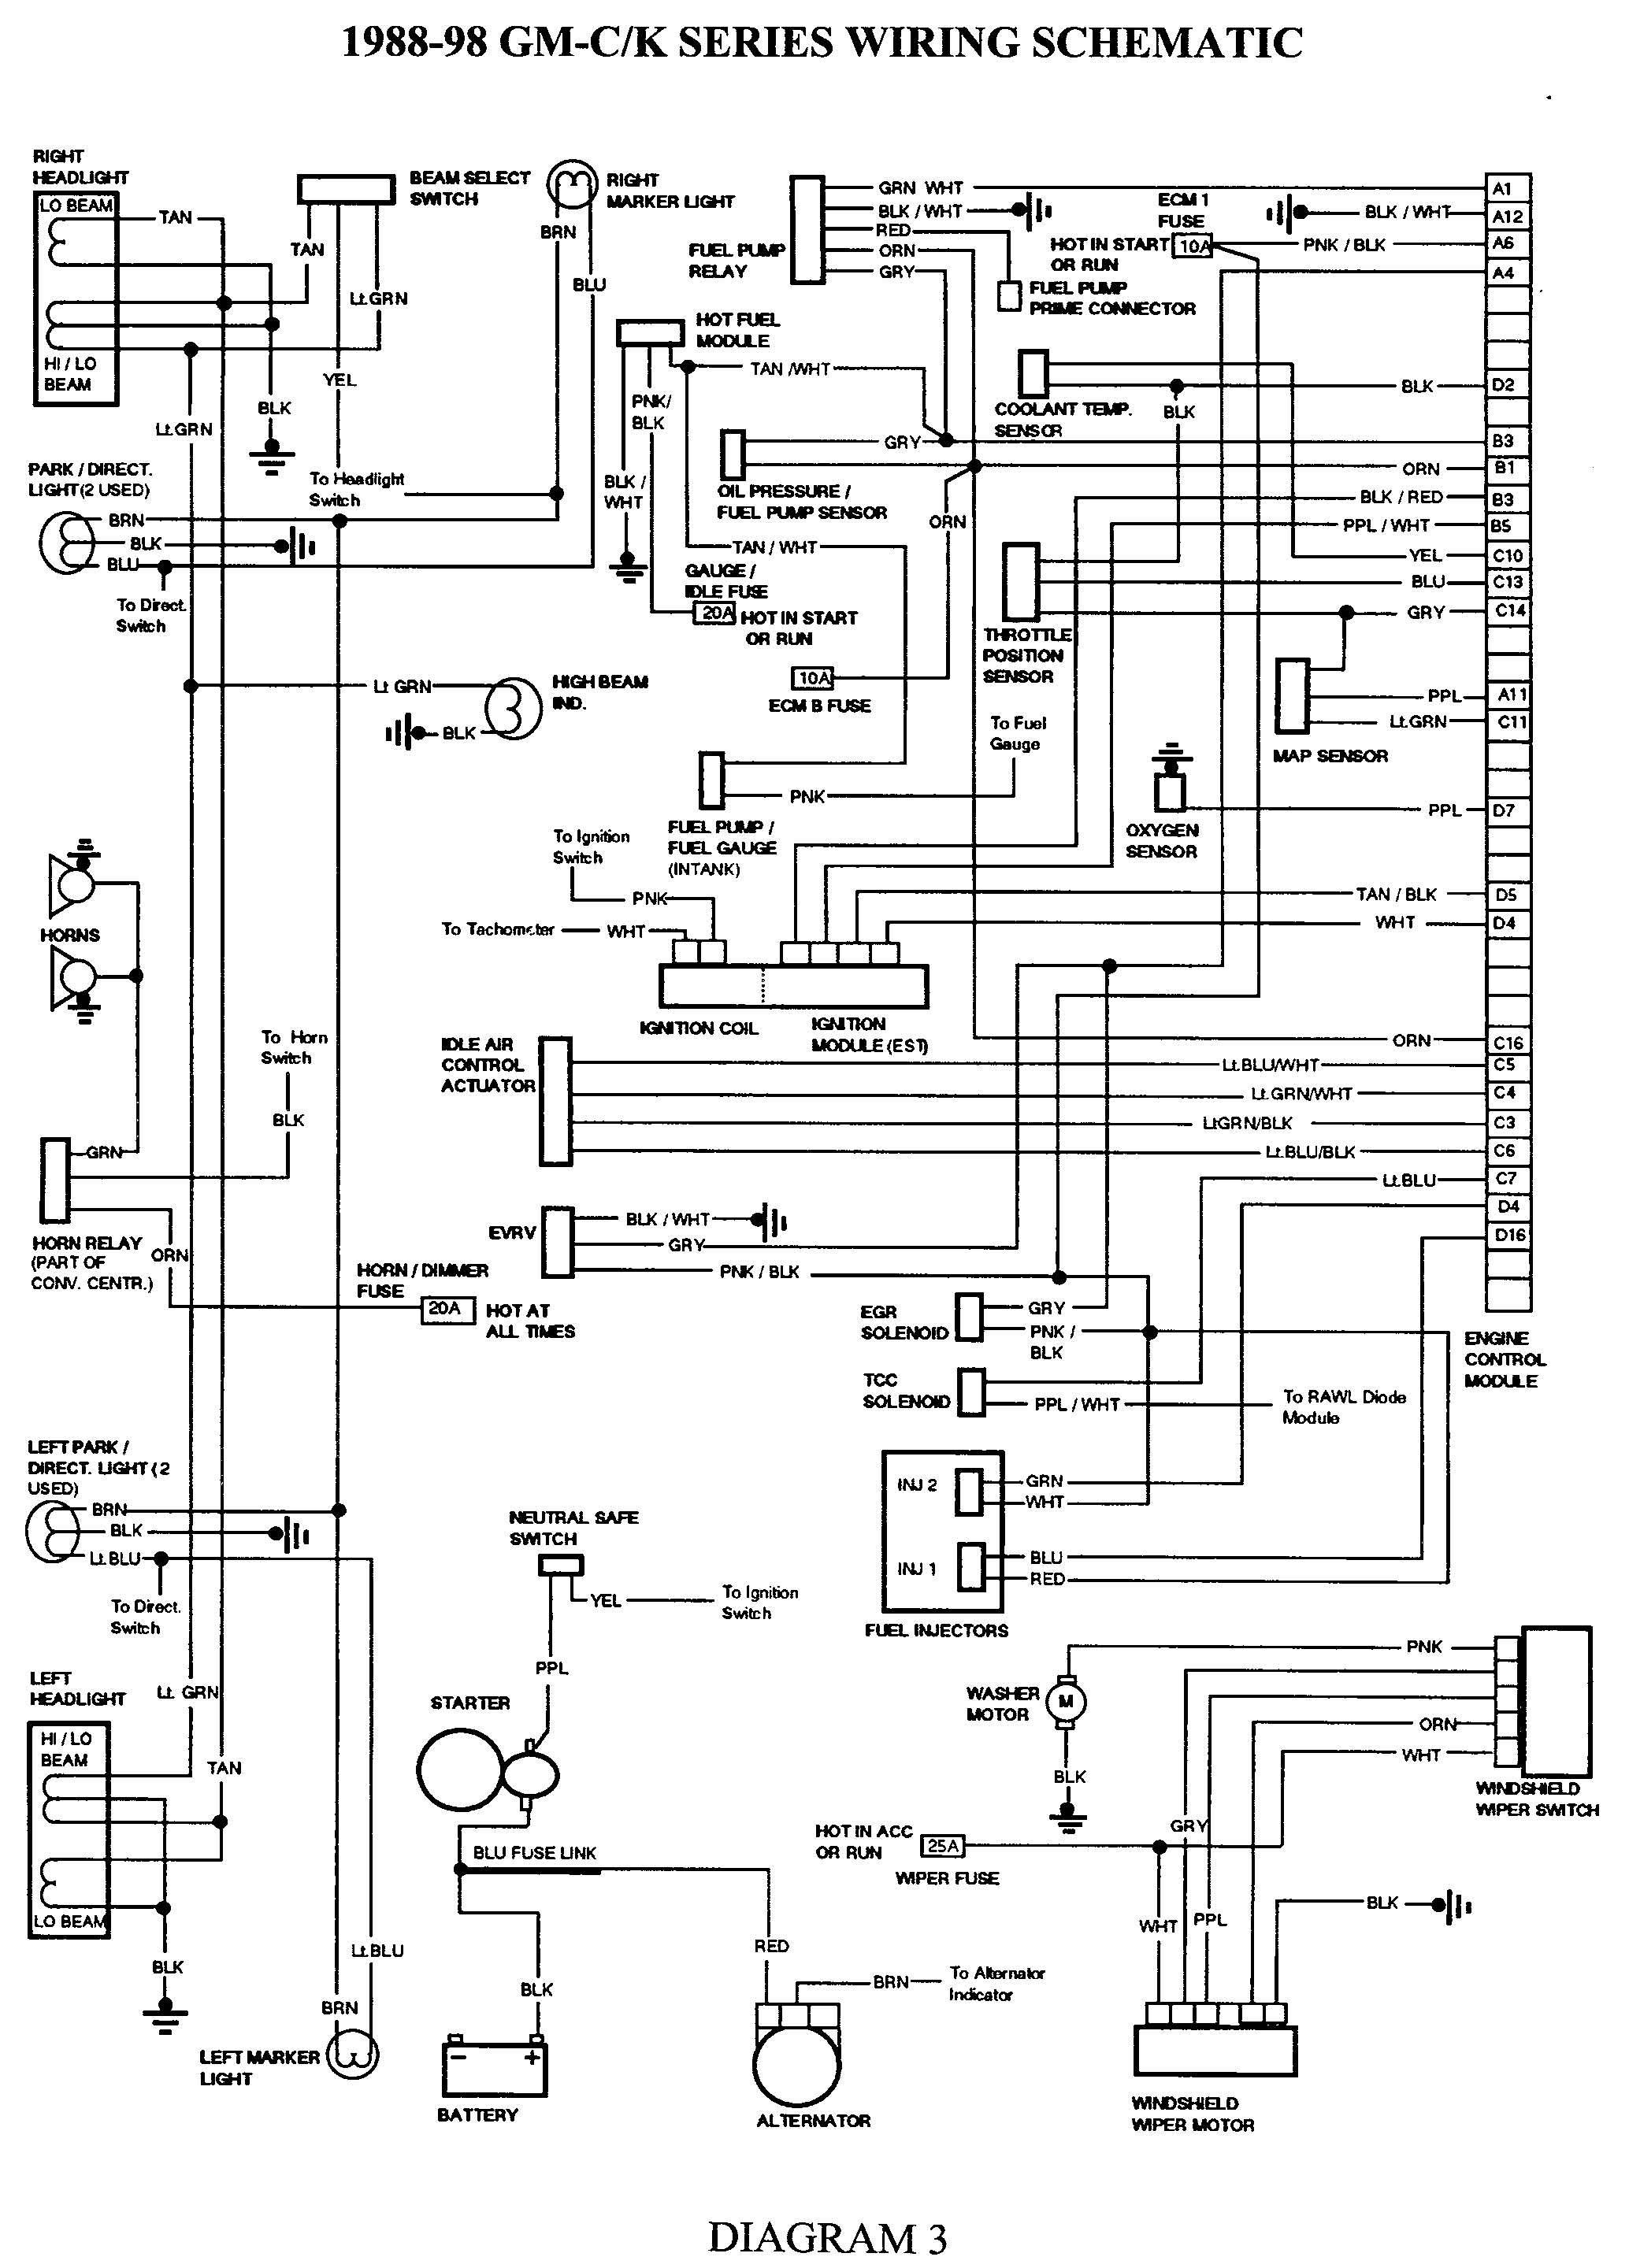 Inspirational 2000 Chevy S10 Wiring Diagram 82 In Honeywell S8610u Wiring Diagram With 2000 Chevy S10 Wiring Diagram In 2000 Chevy S10 Chevy S10 Diagram Chevy